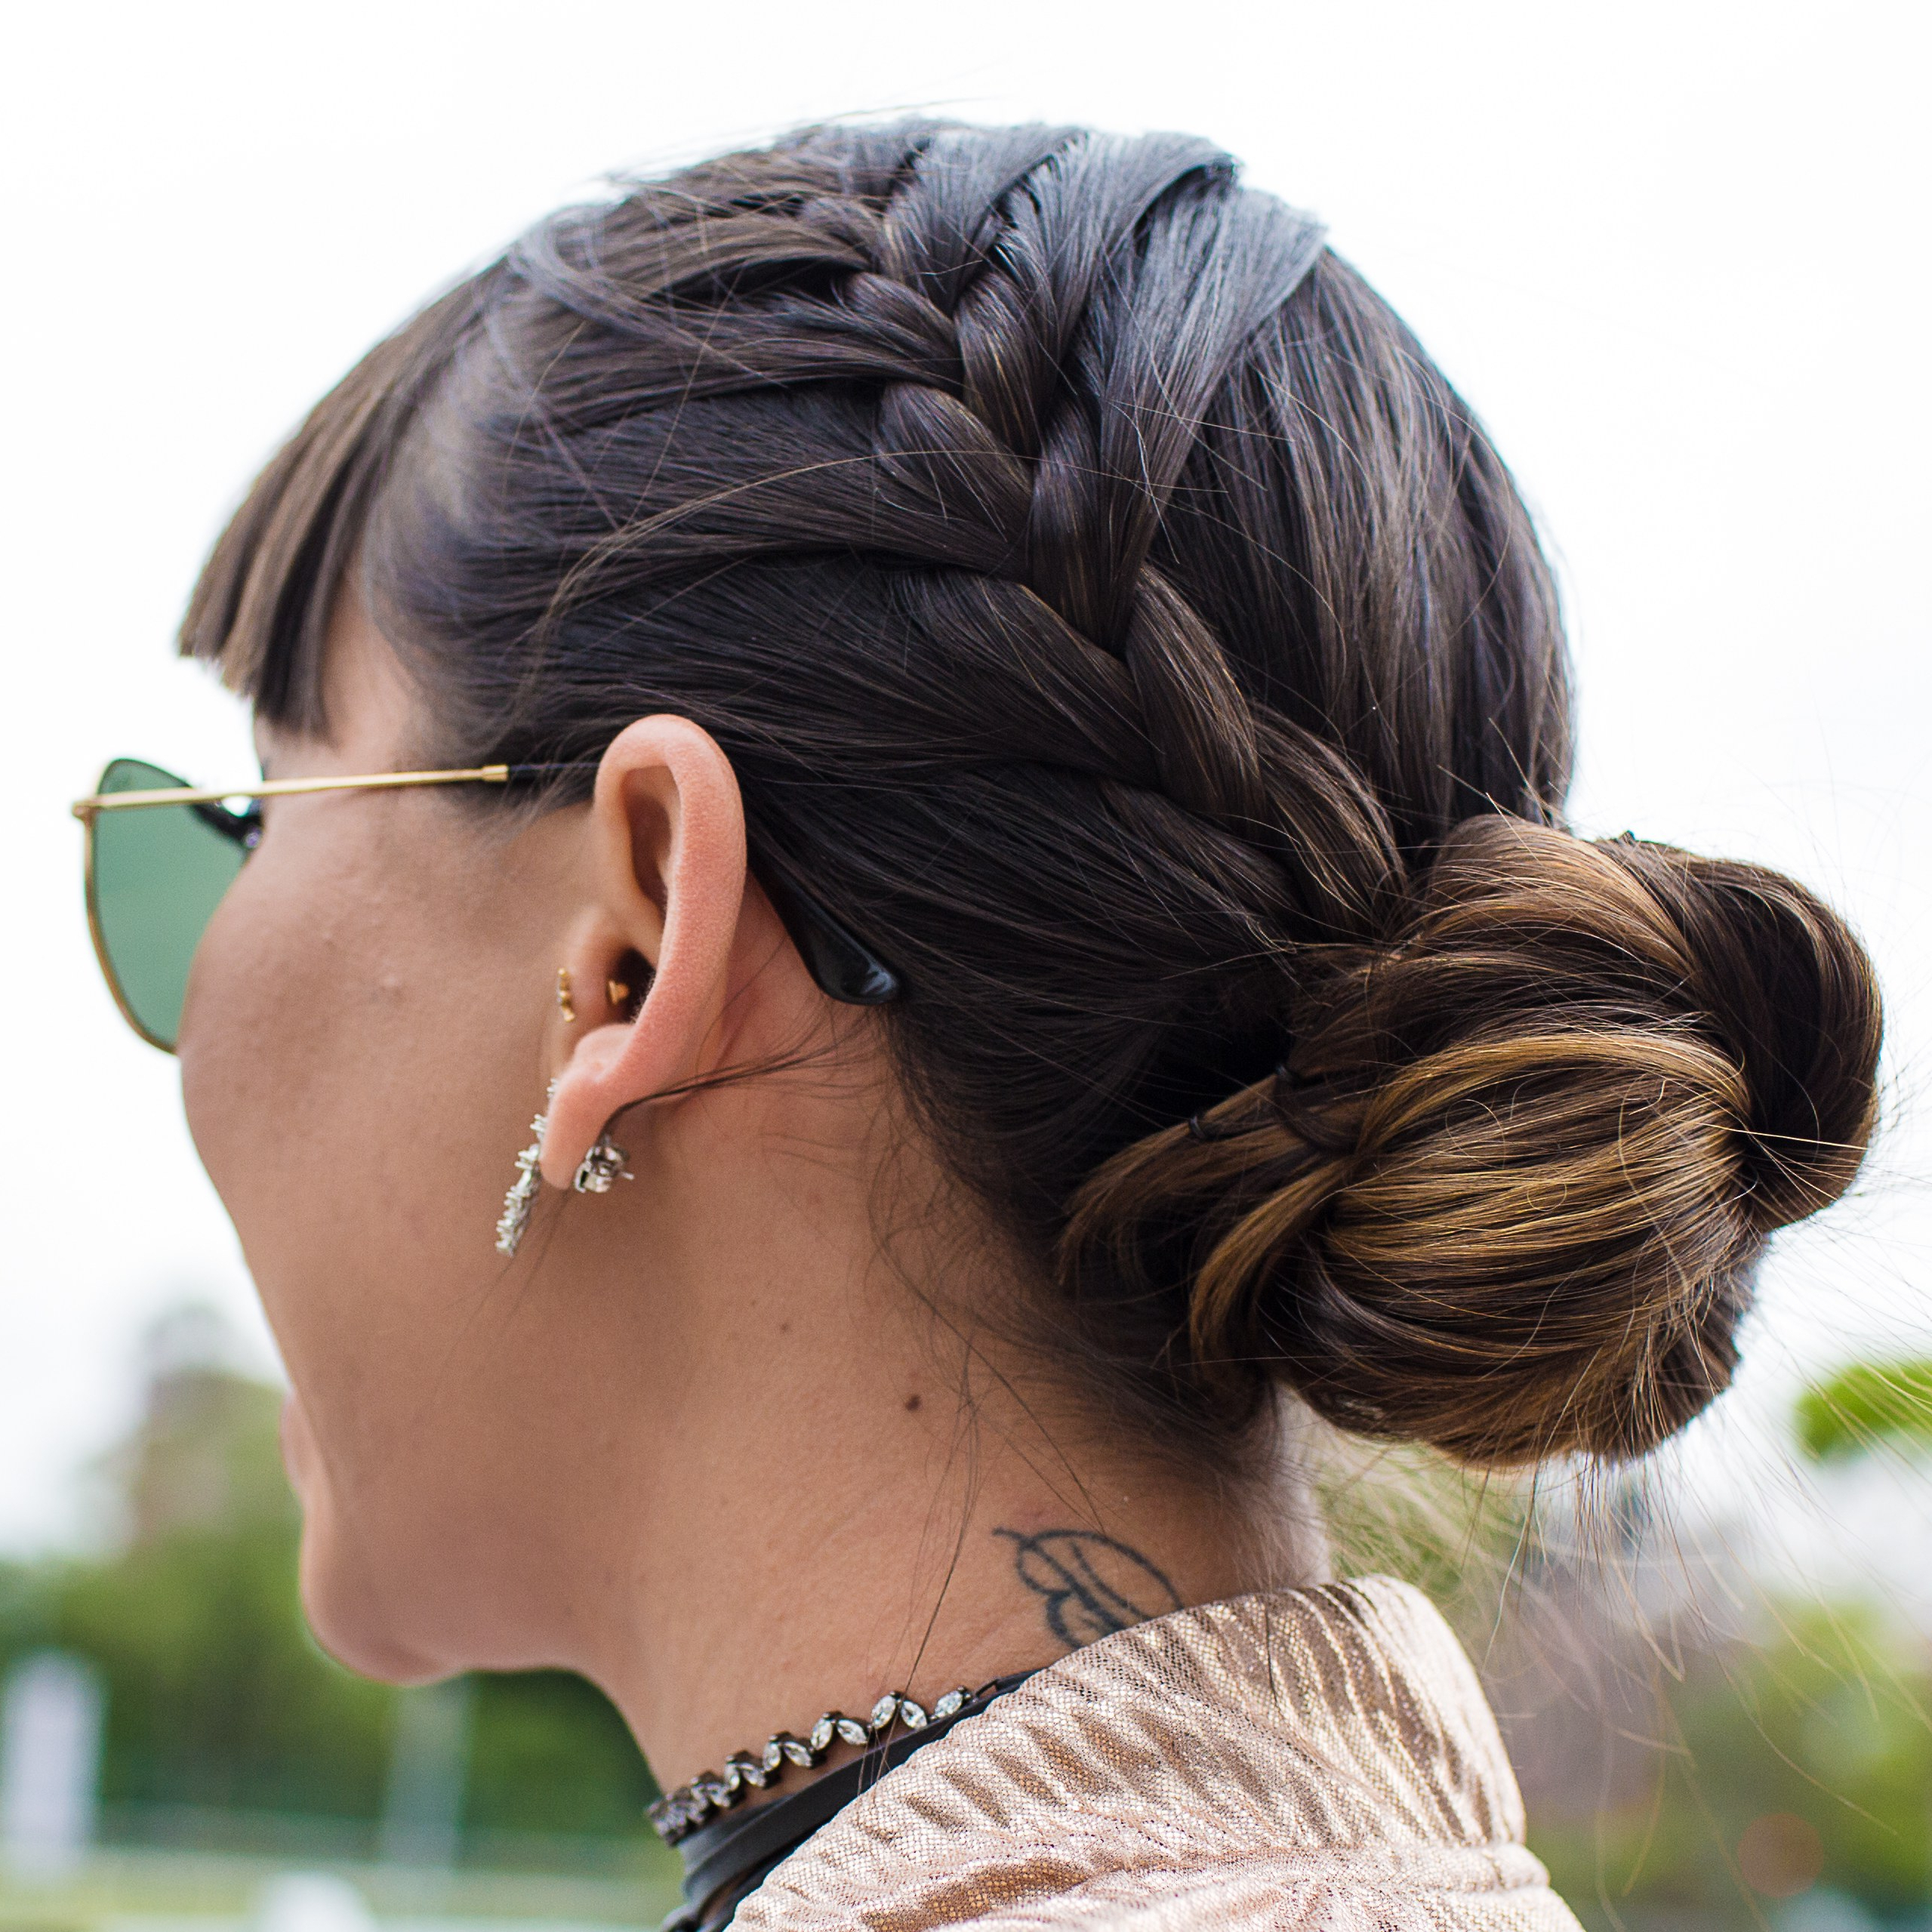 Widely Used Forward Braided Hairstyles With Hair Wrap Pertaining To How To Braid Hair – 10 Tutorials You Can Do Yourself (Gallery 5 of 20)